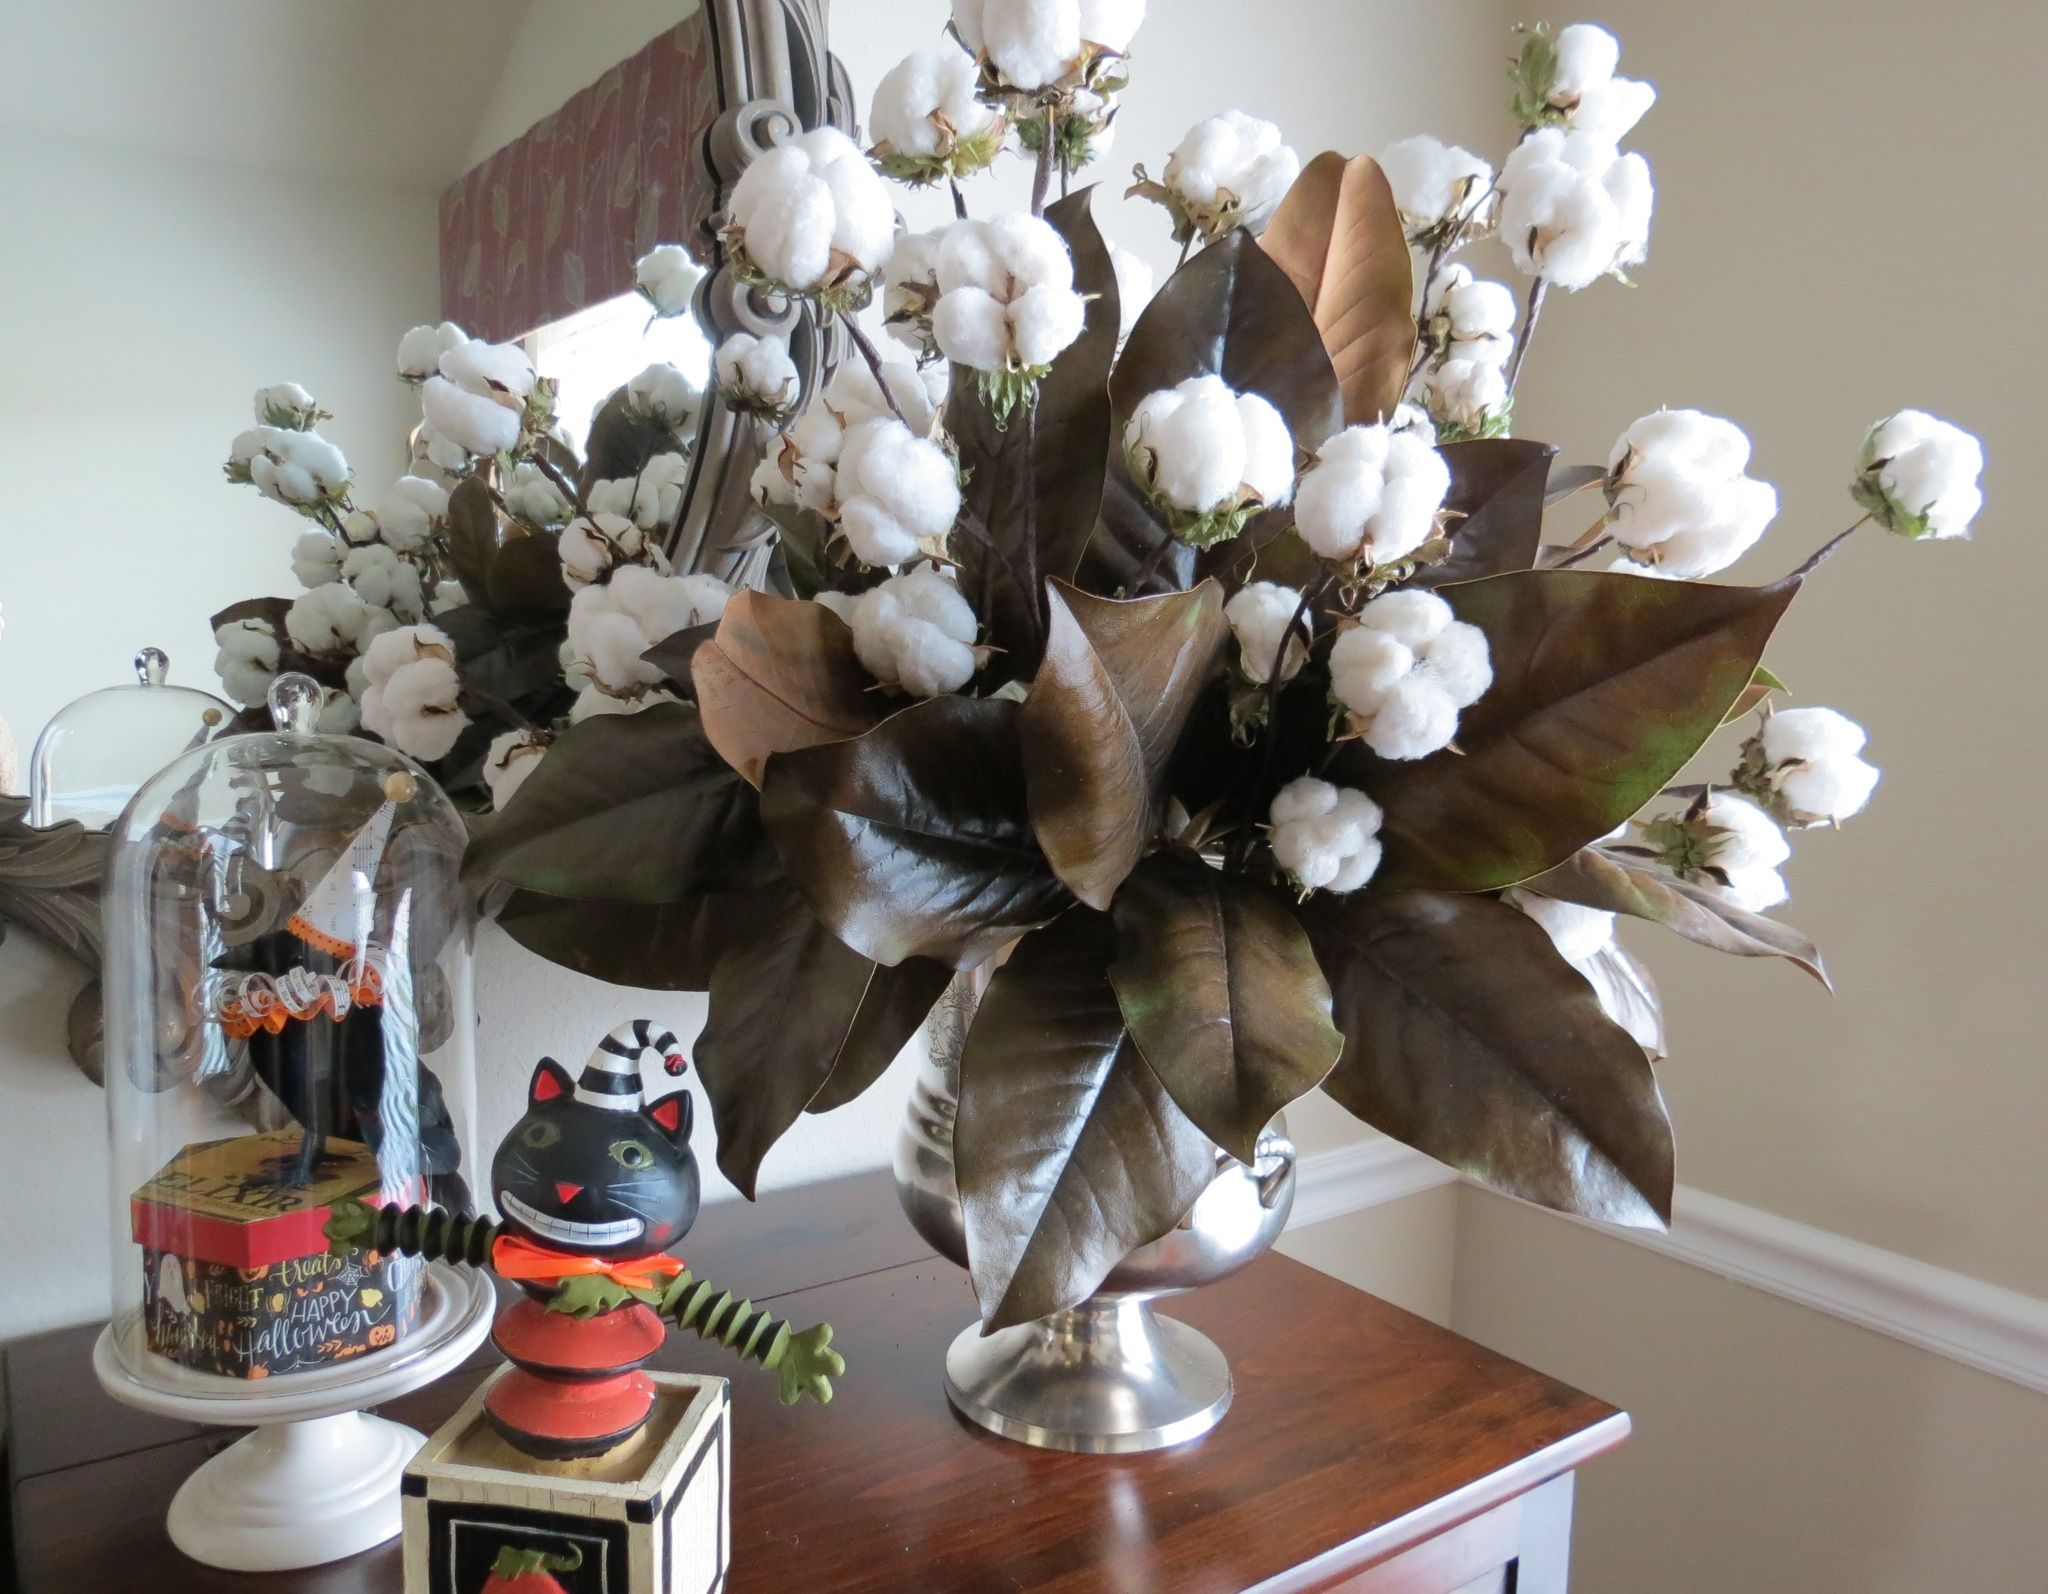 I just love natural accents we grew the cotton ourselves